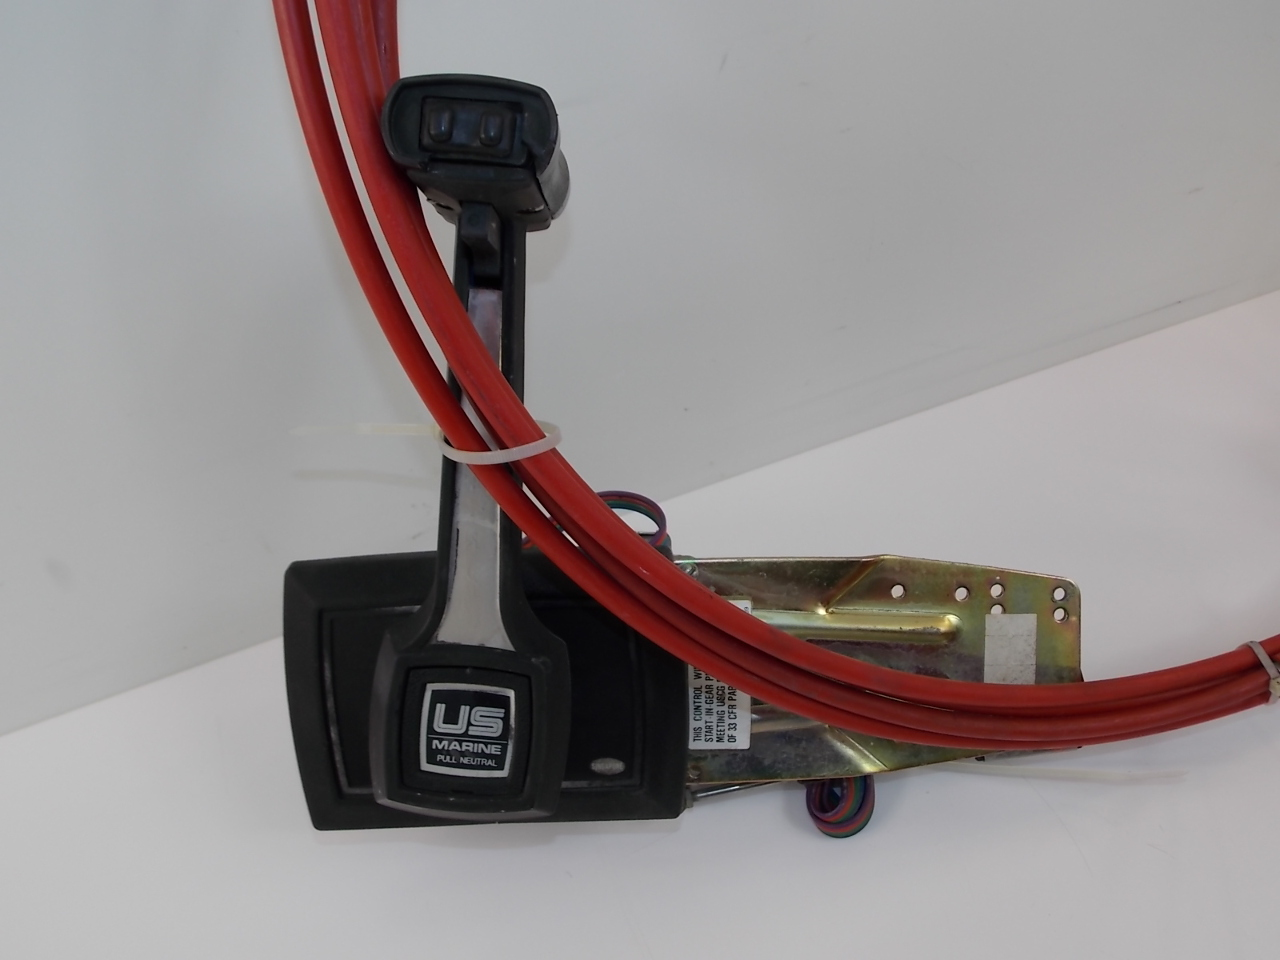 force chrysler u s  marine control box with 13 foot cables